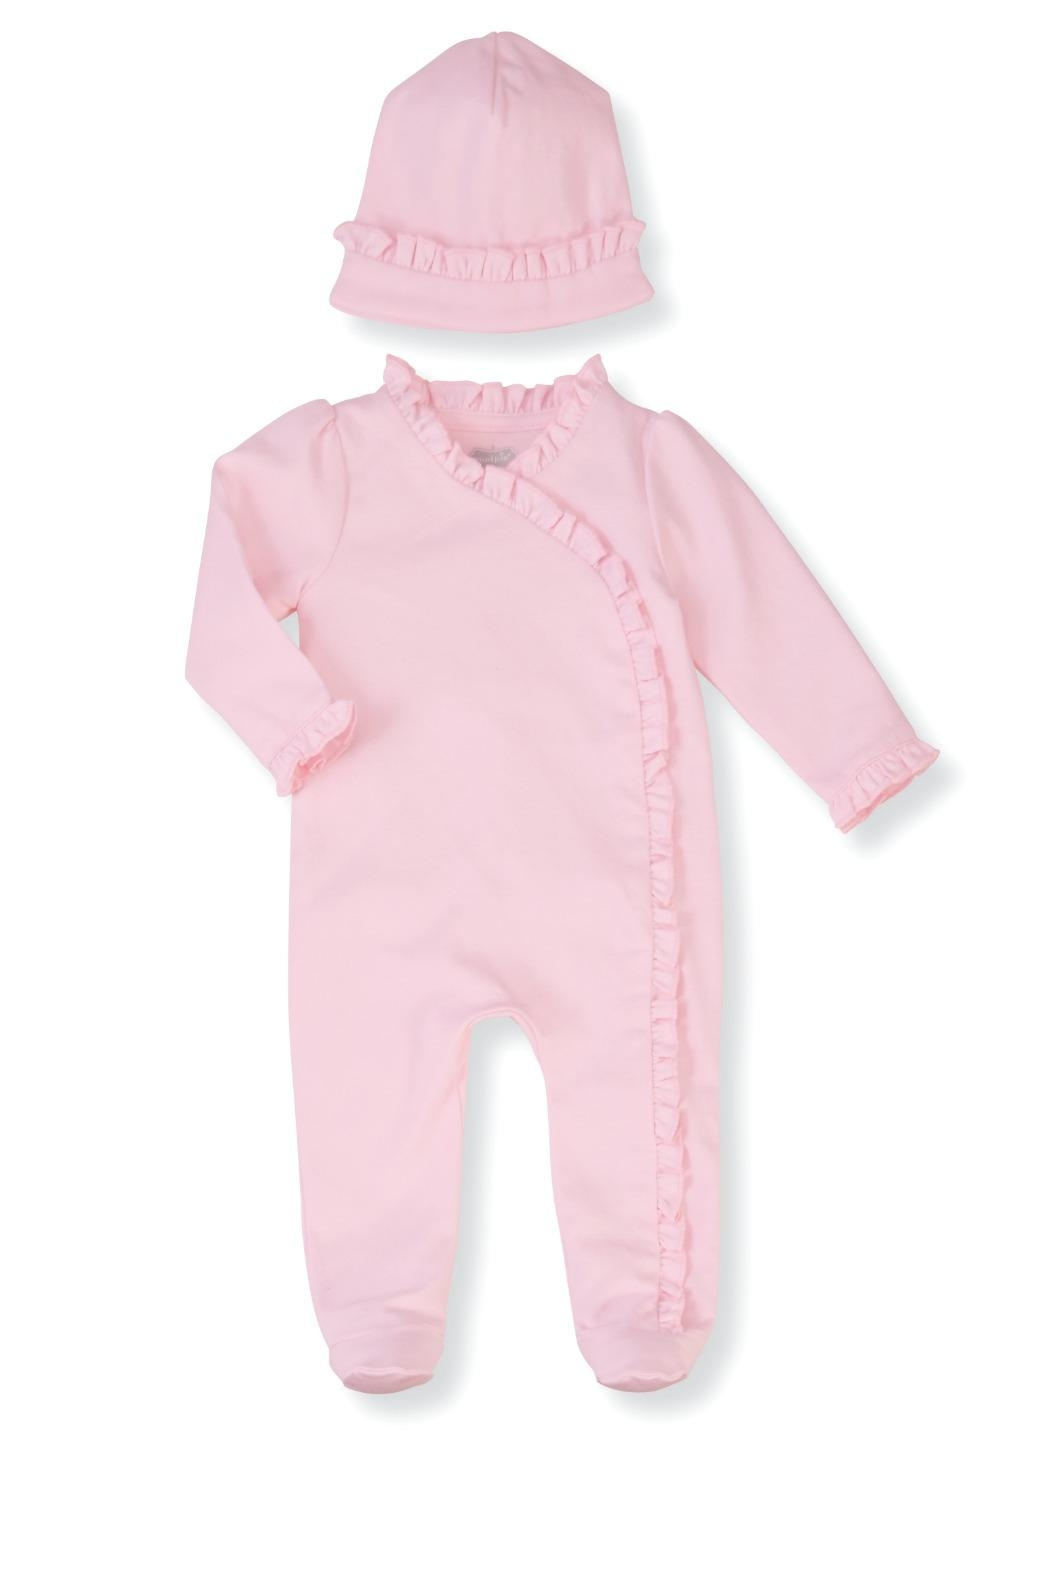 Mud Pie Pink Ruffle Set - Main Image